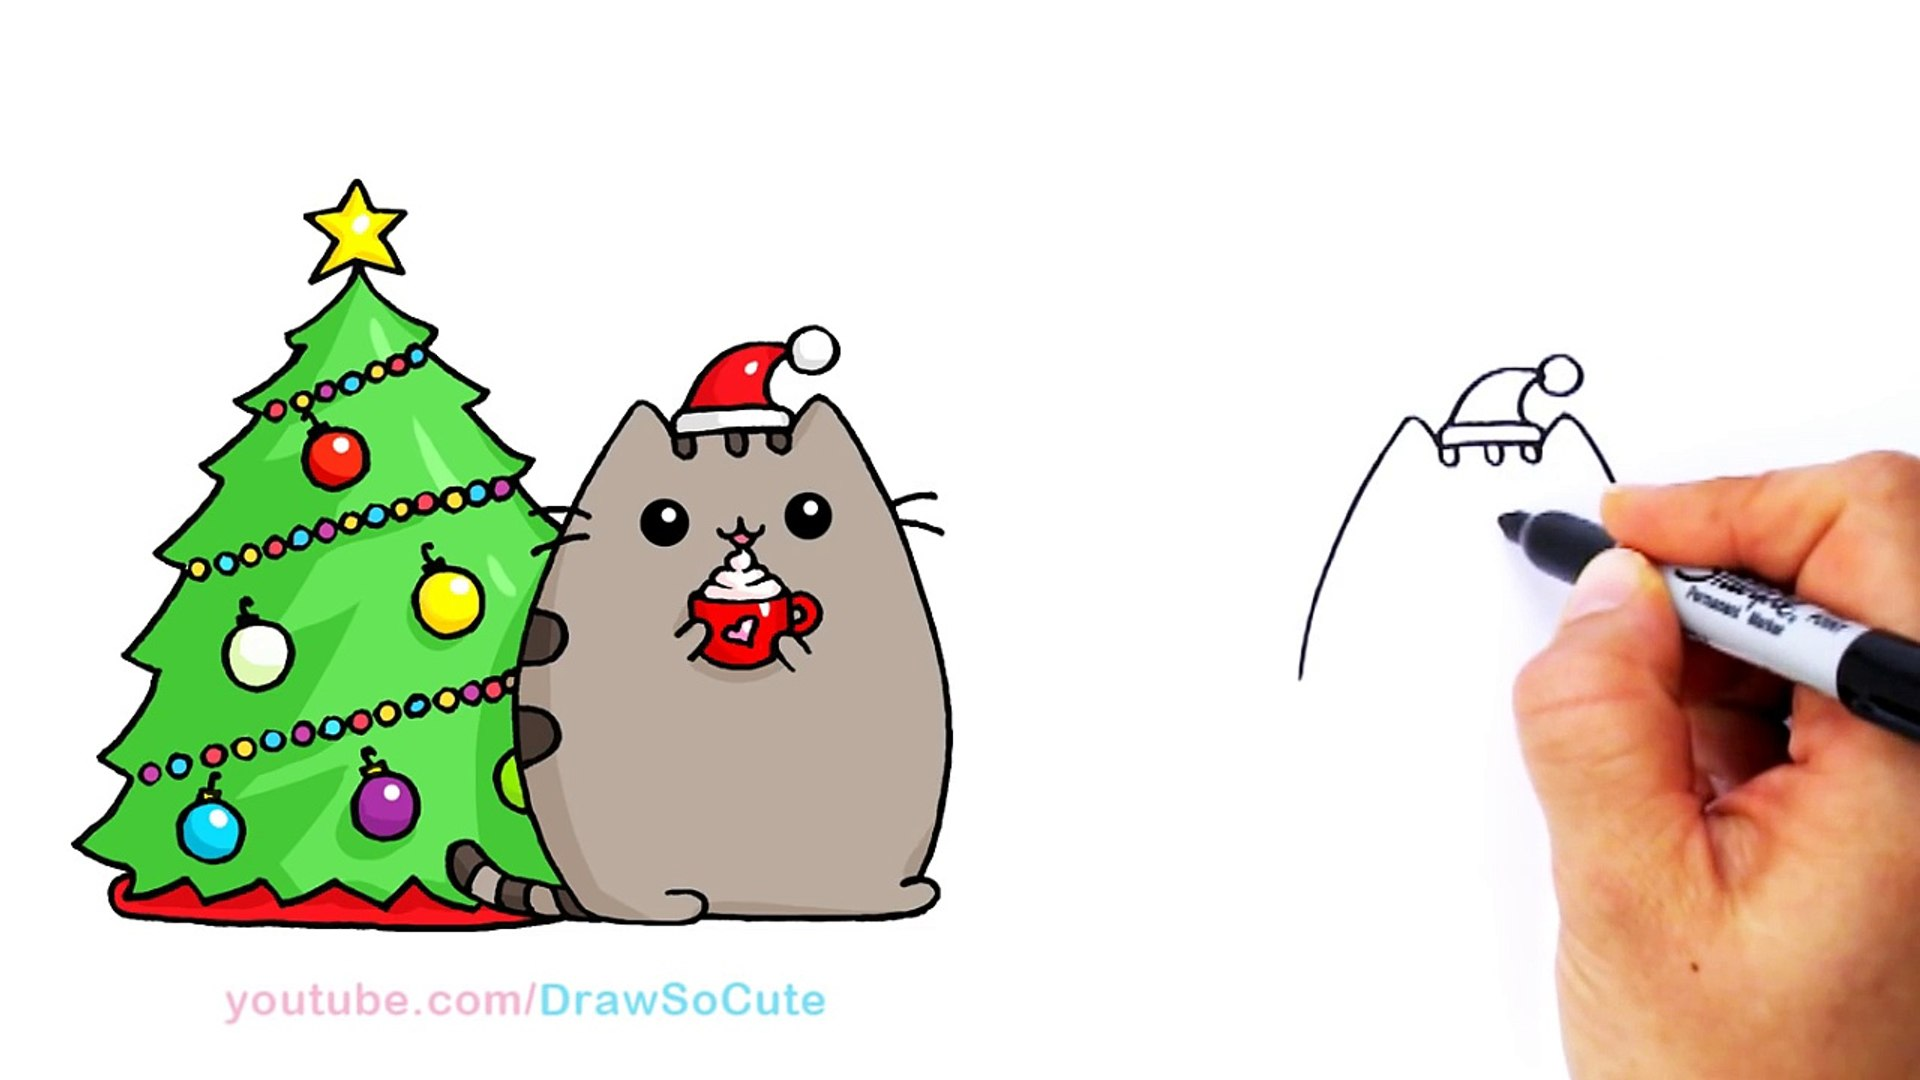 Christmas Pusheen.How To Draw Christmas Holiday Pusheen Cat Step By Step Easy And Cute